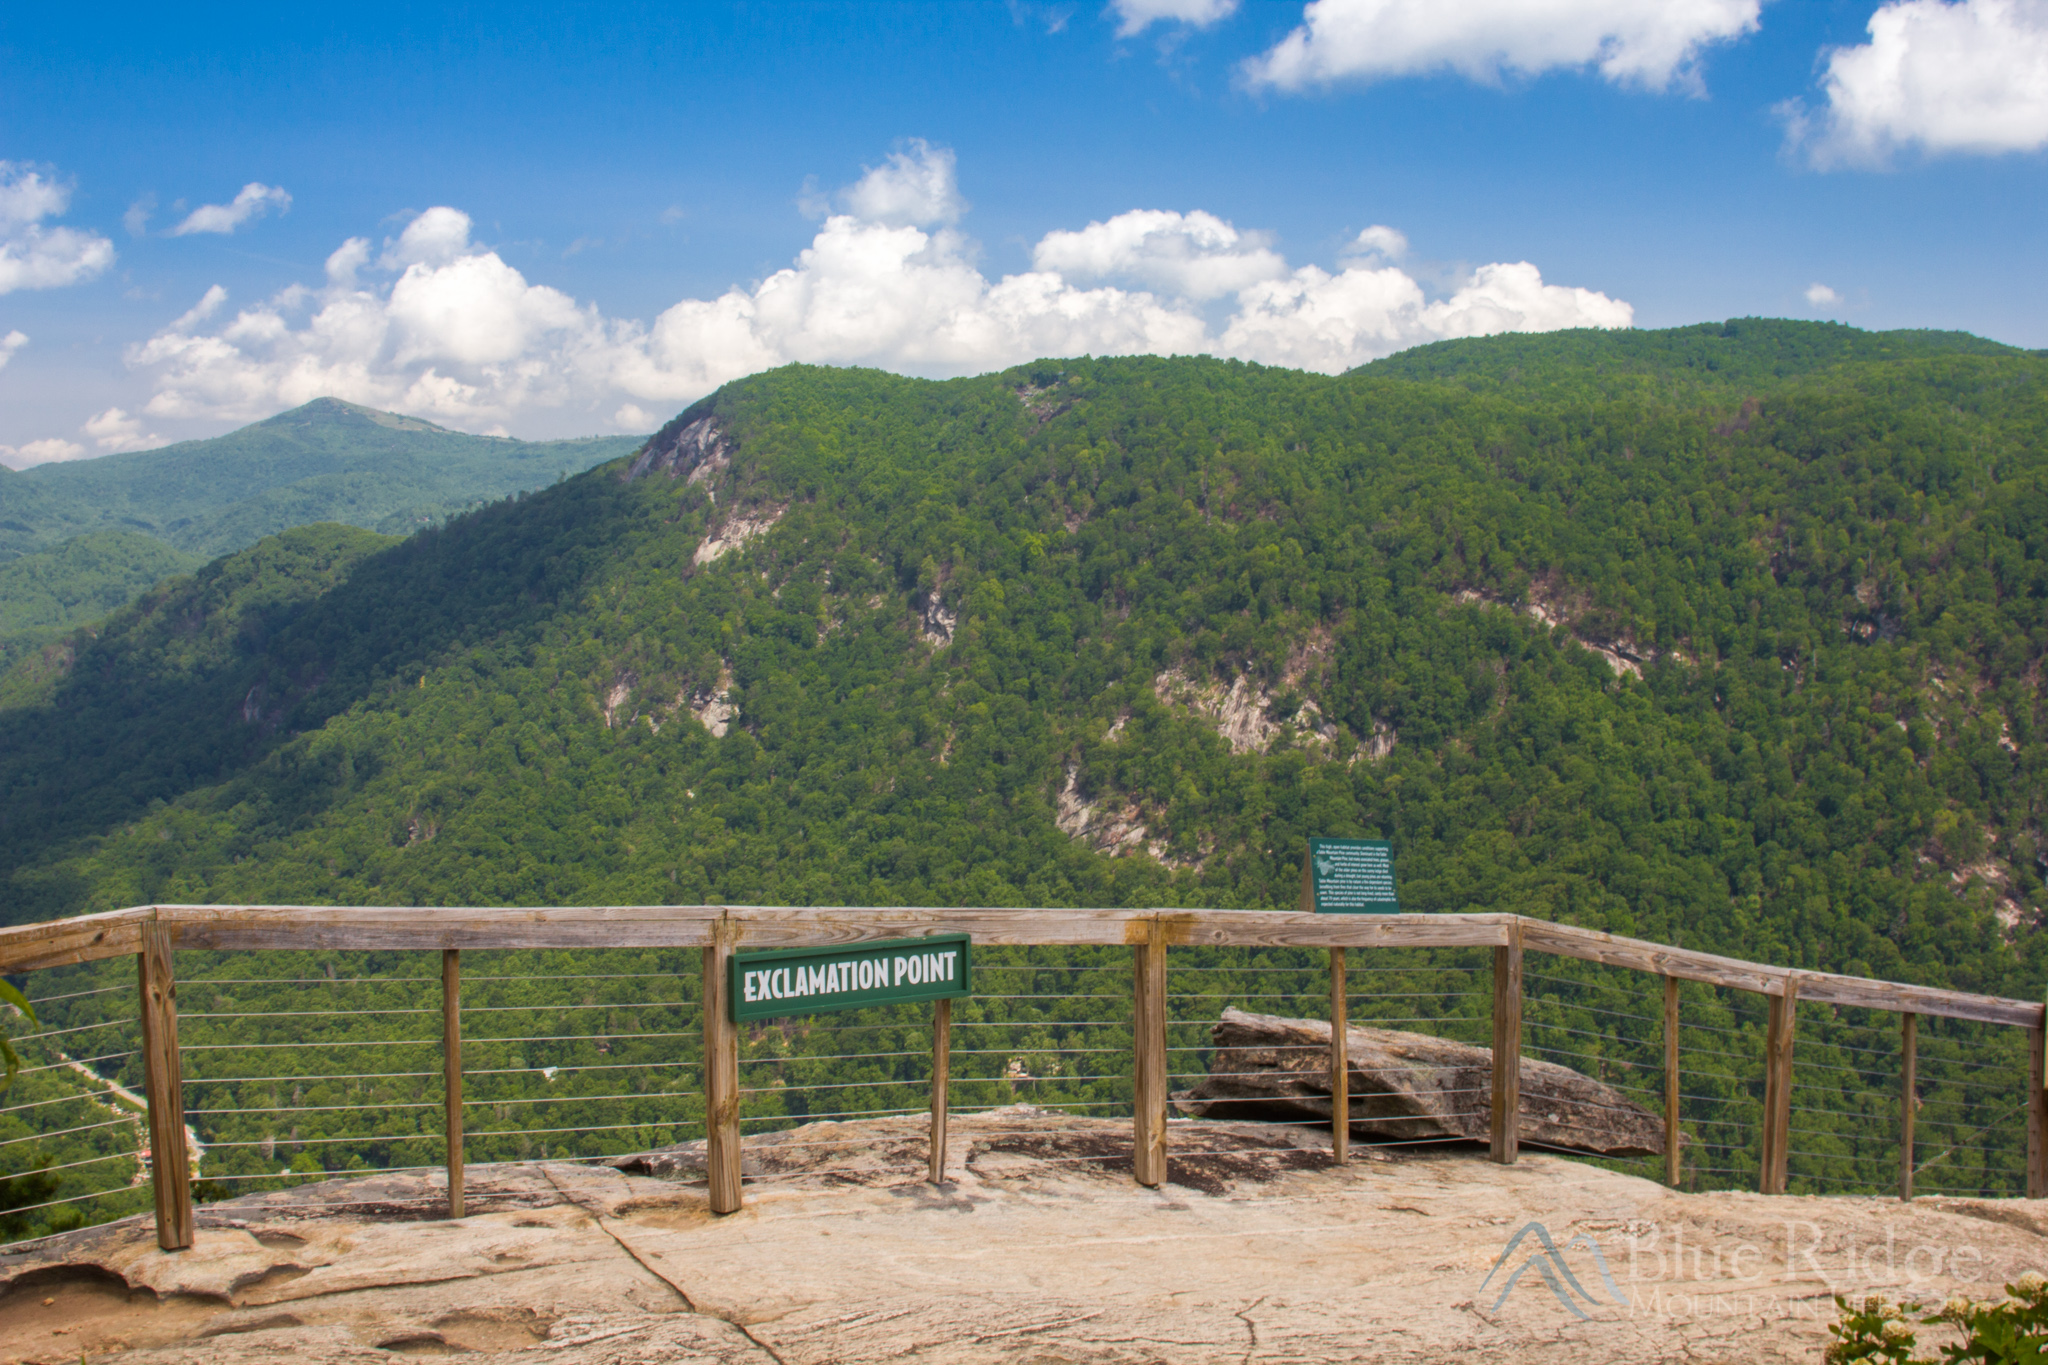 Exclamation Point, Chimney Rock State Park